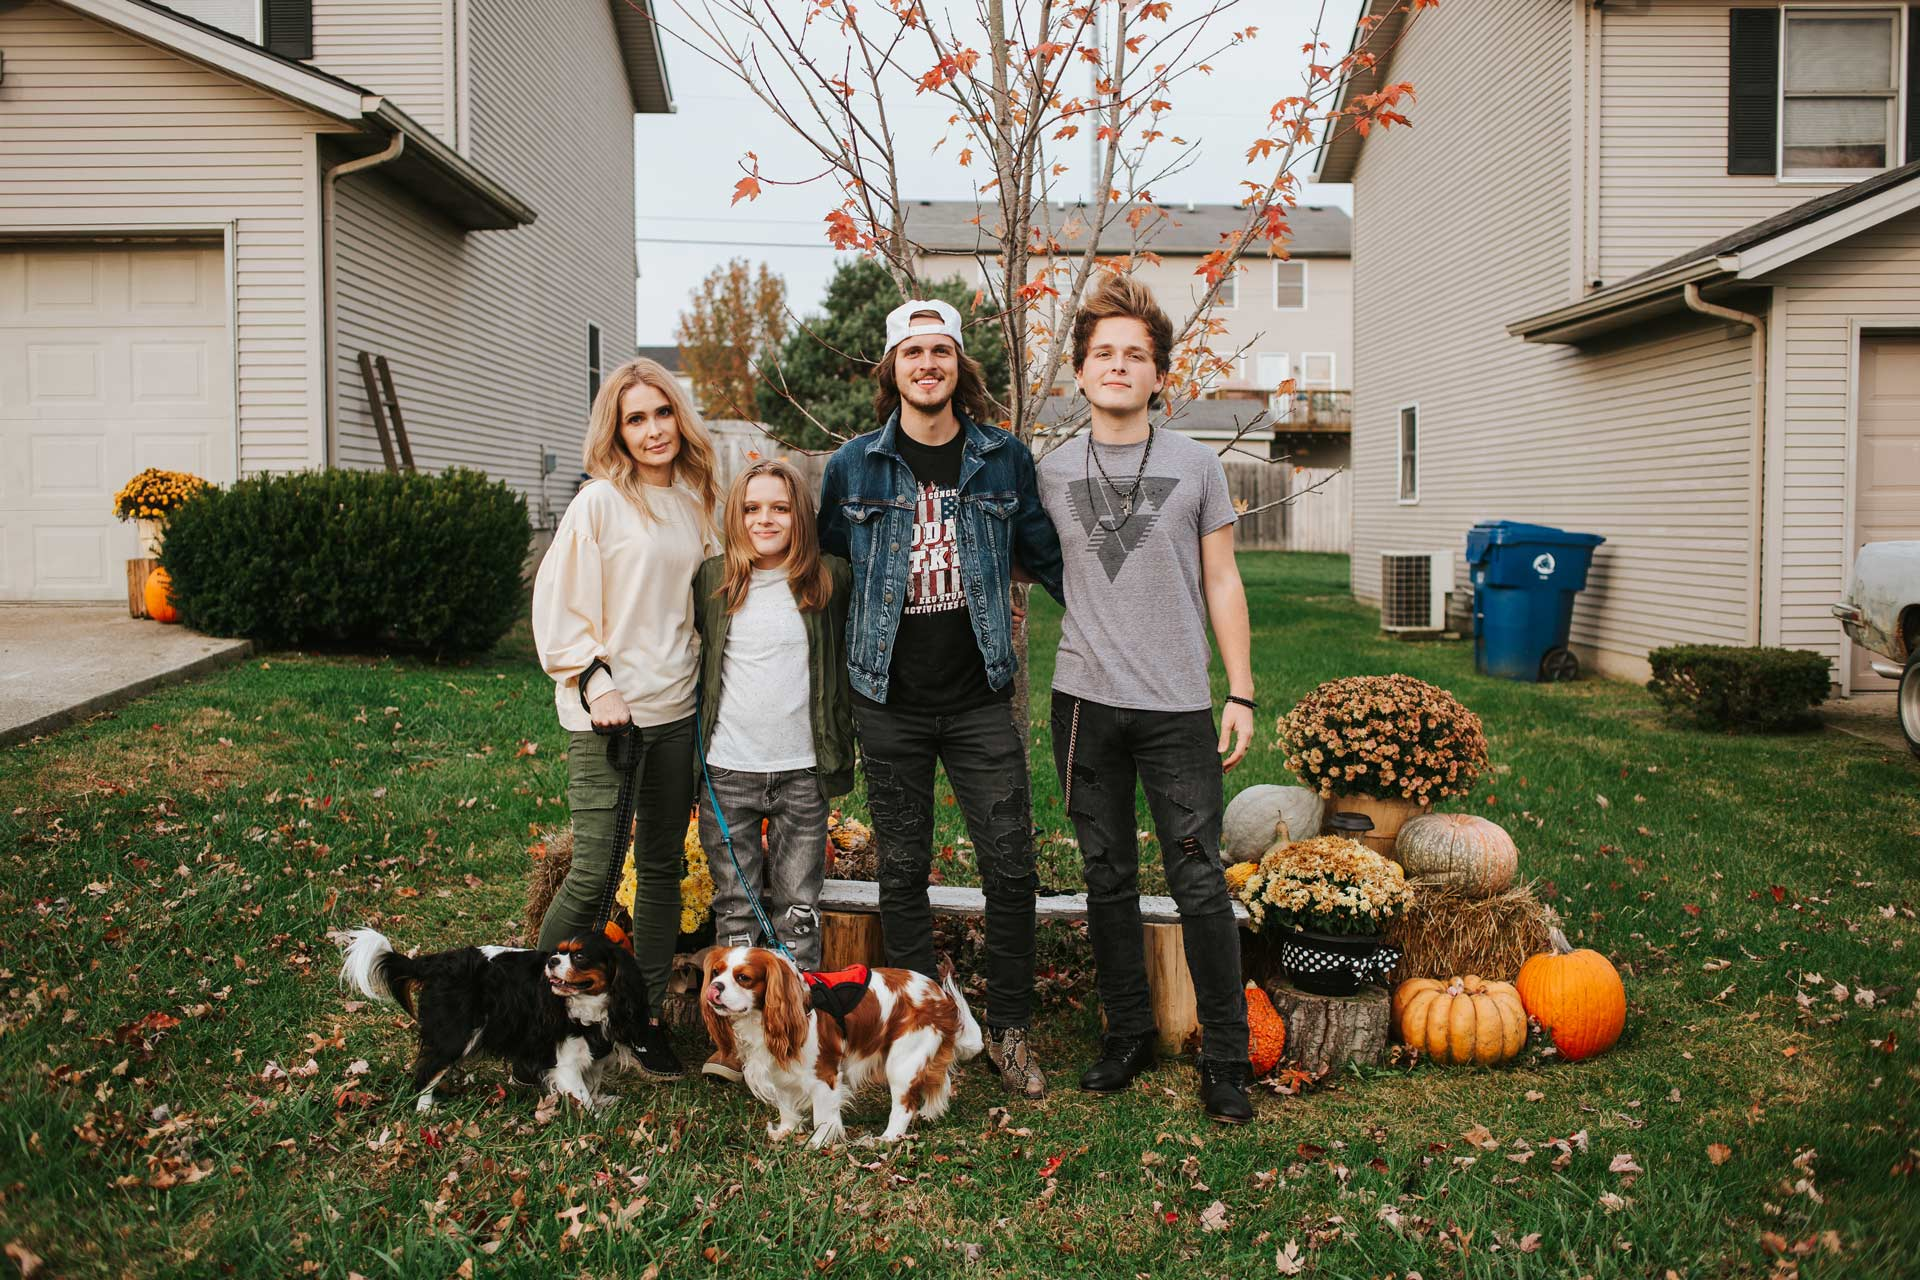 Evan standing side by side with his family and two dogs. On his right his mother, Krystena, smiles softly. On his left are his brothers, tall young adult white boys with medium to long brown hair. One is wearing a white baseball cap backwards and a denim jacket with black jeans. The other is wearing a grey shirt with black jeans. All are smiling.